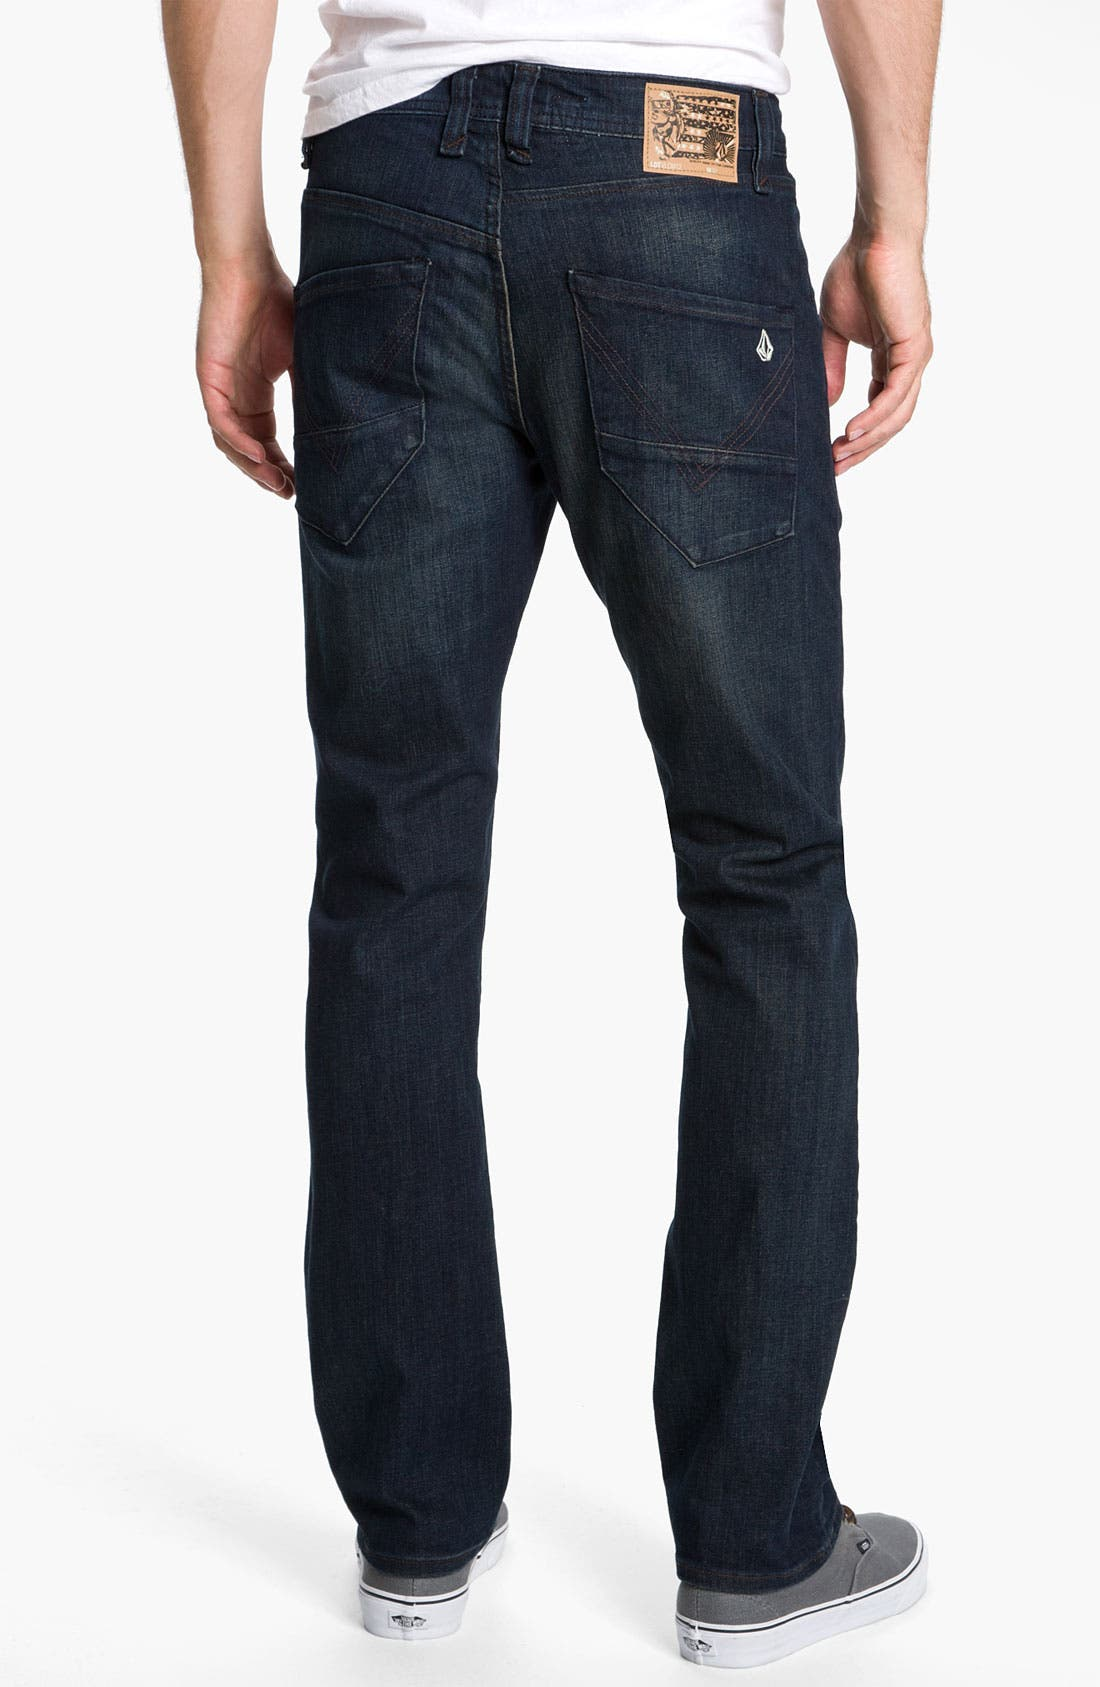 Alternate Image 1 Selected - Volcom 'Nova' Slim Straight Leg Jeans (Dark Room Stretch) (Online Exclusive)